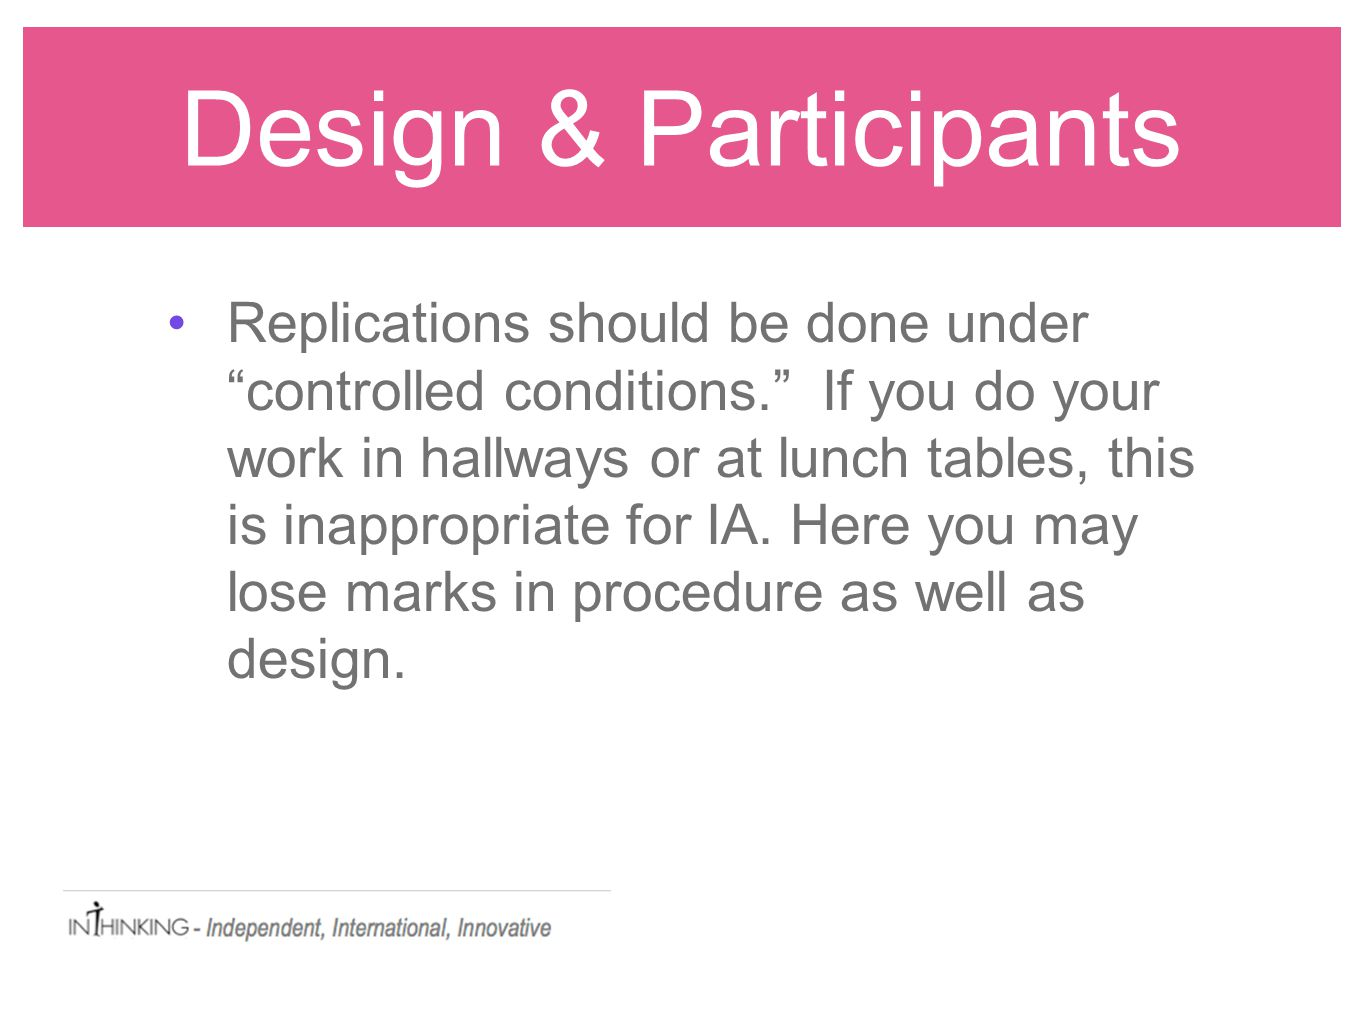 Design & Participants Replications should be done under controlled conditions. If you do your work in hallways or at lunch tables, this is inappropriate for IA.